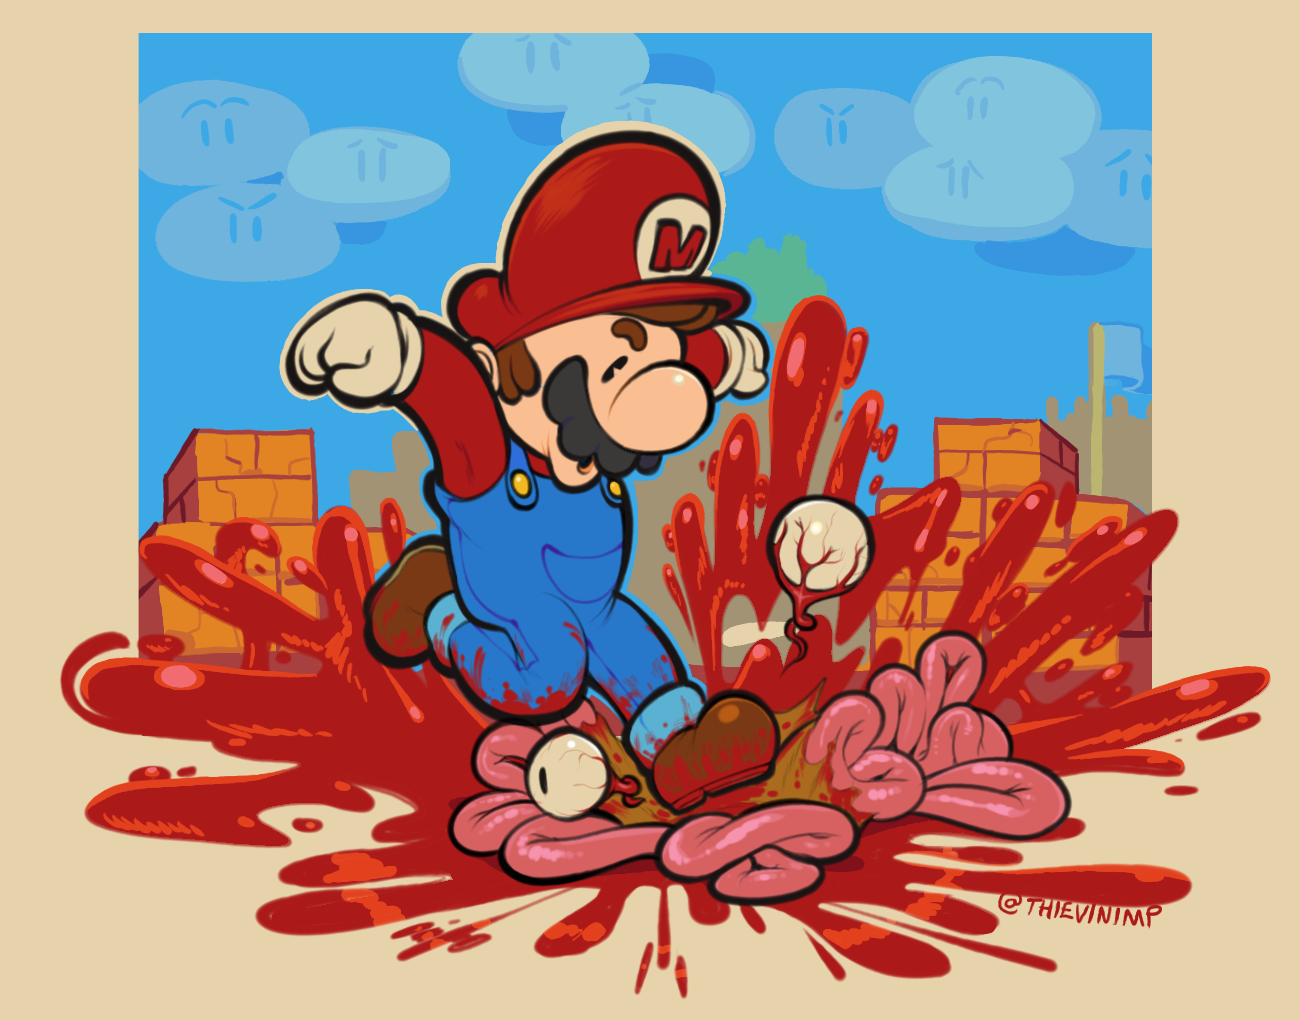 Dude What if Mario